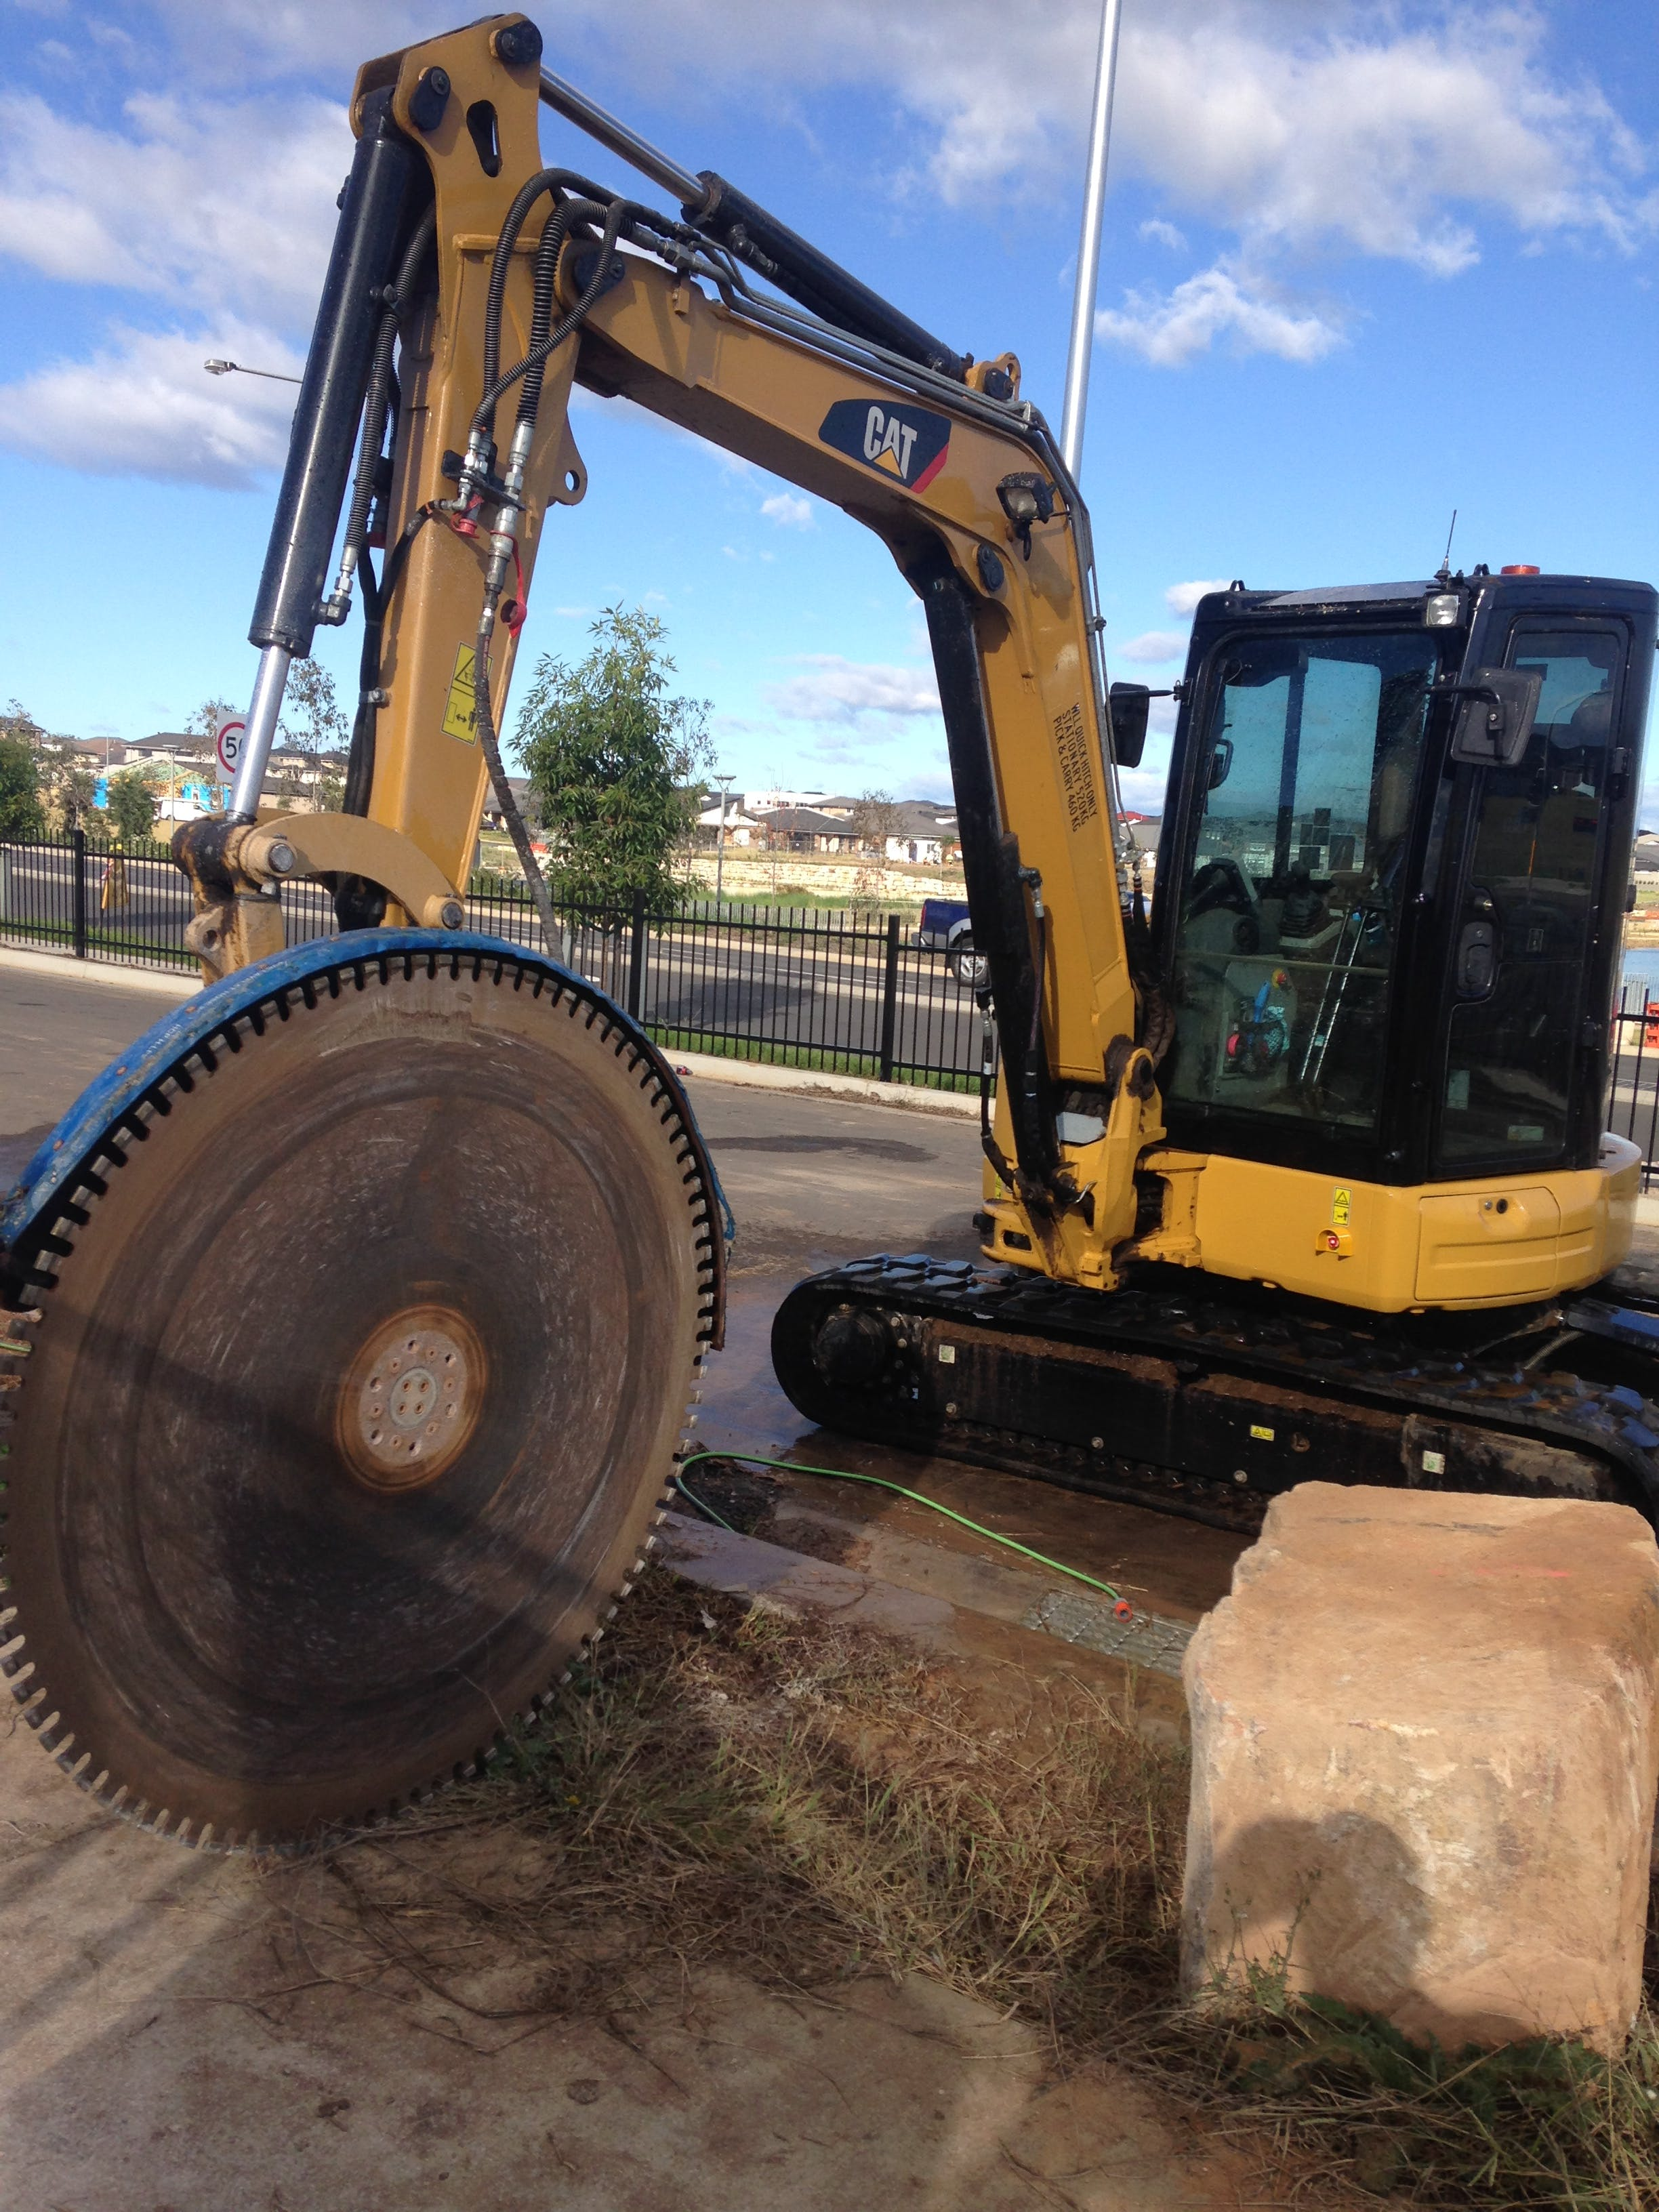 DJK Excavations - 5 tonne excavator and rock saw for hire